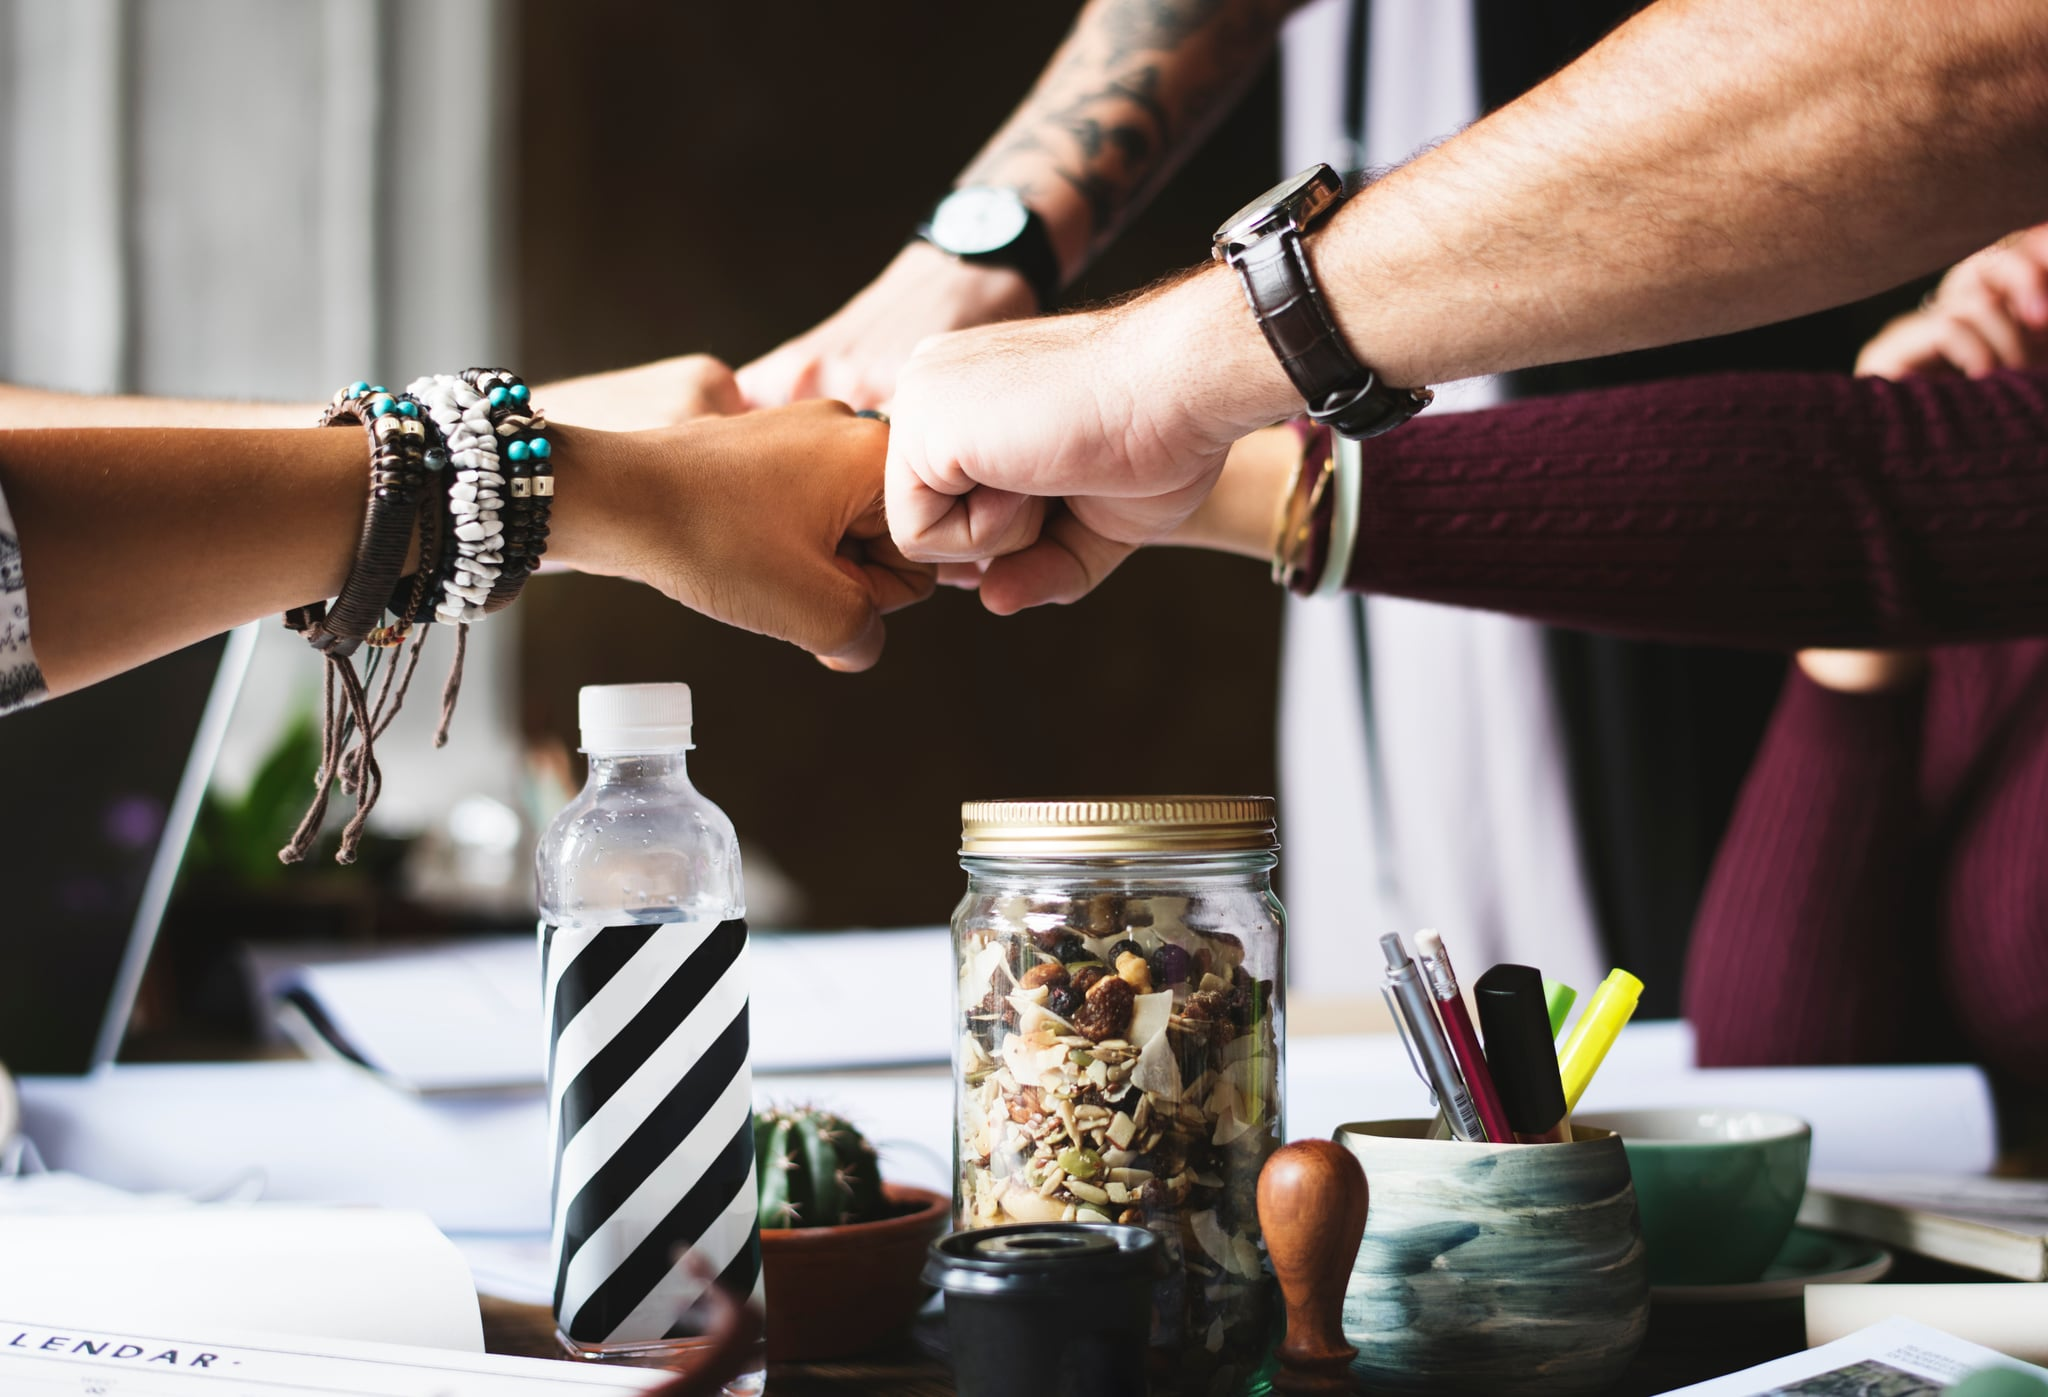 6 Ways You Can Get Your Co-Workers to Like You